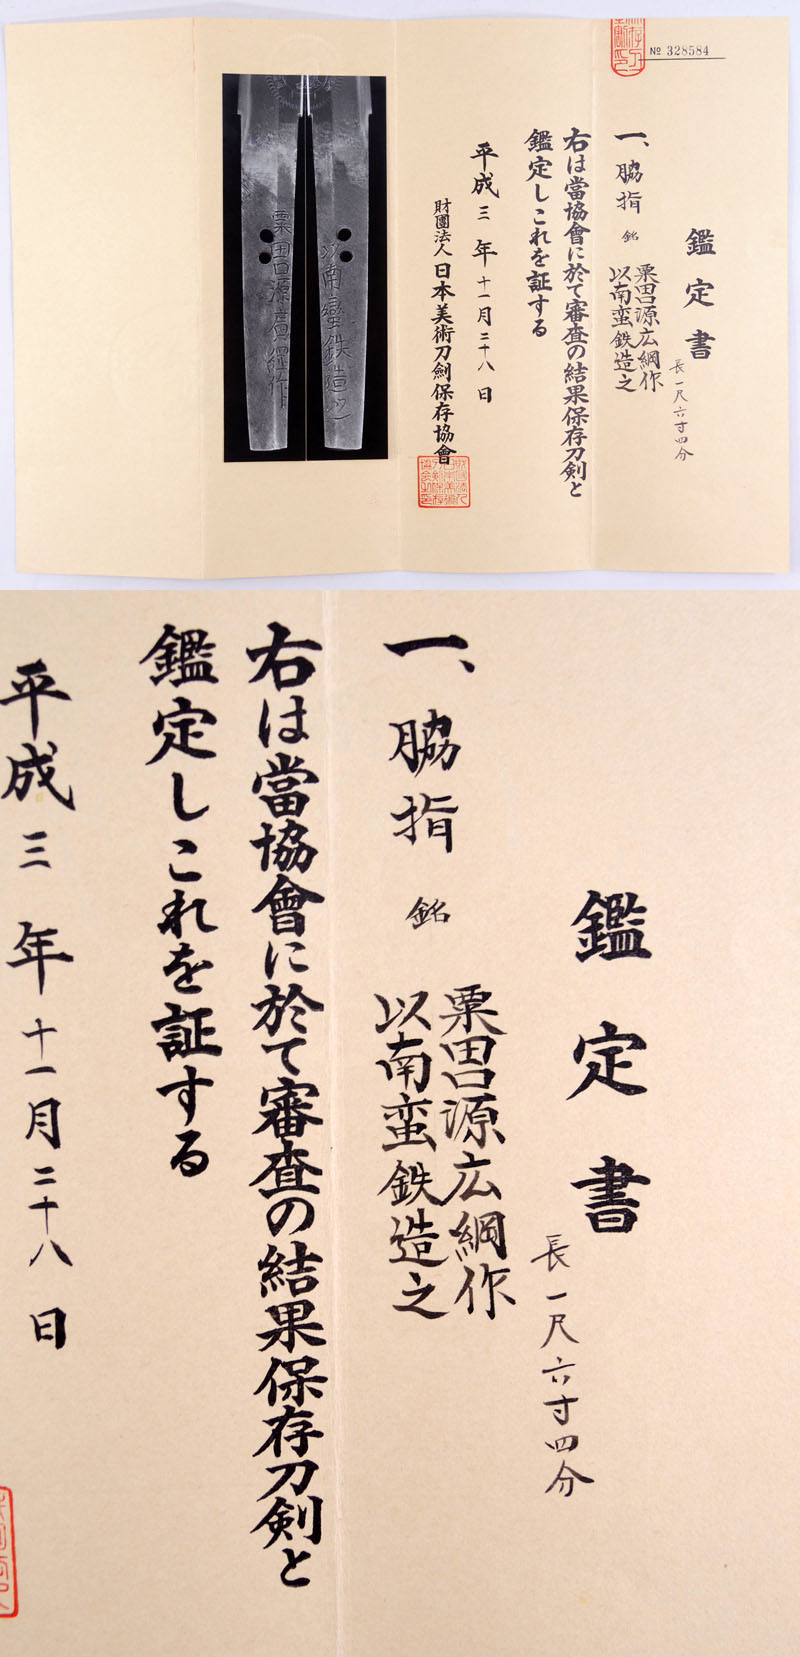 粟田口源広綱作 Picture of Certificate